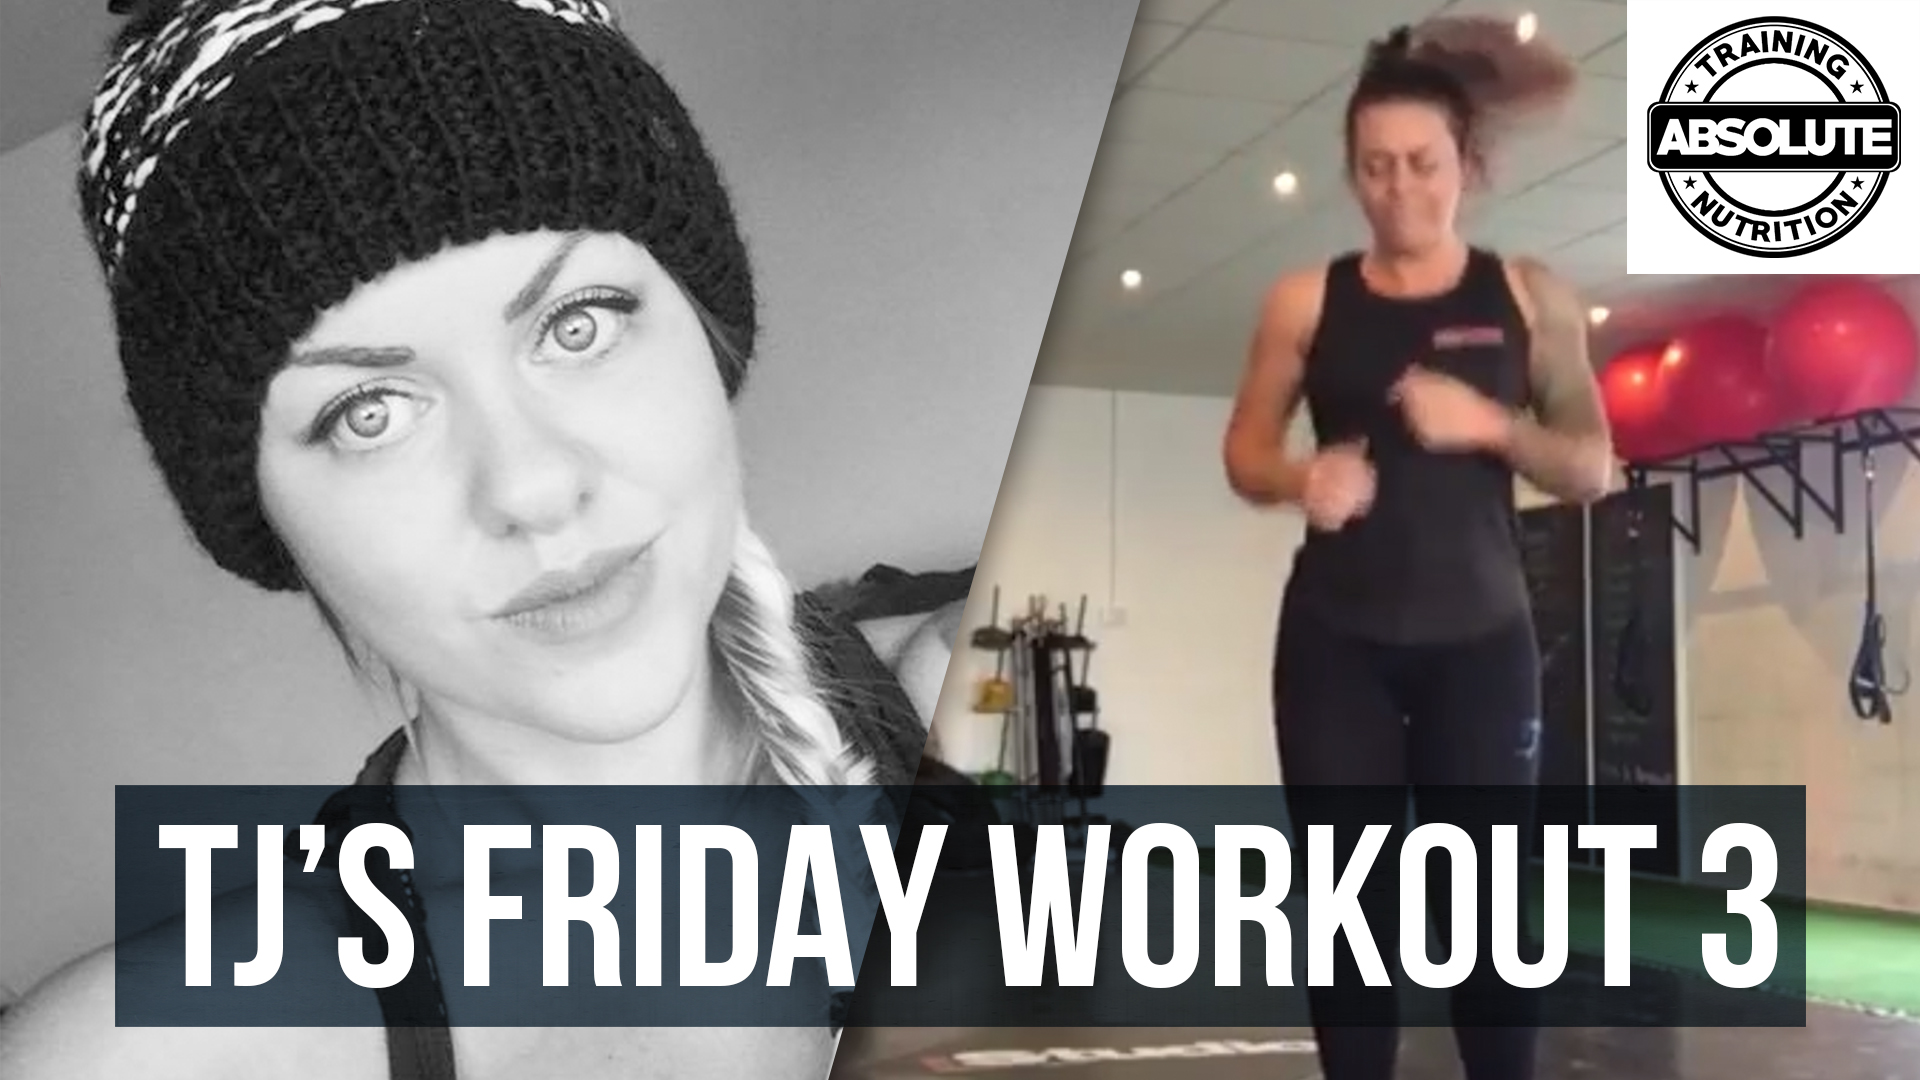 TJ Friday Workout 3